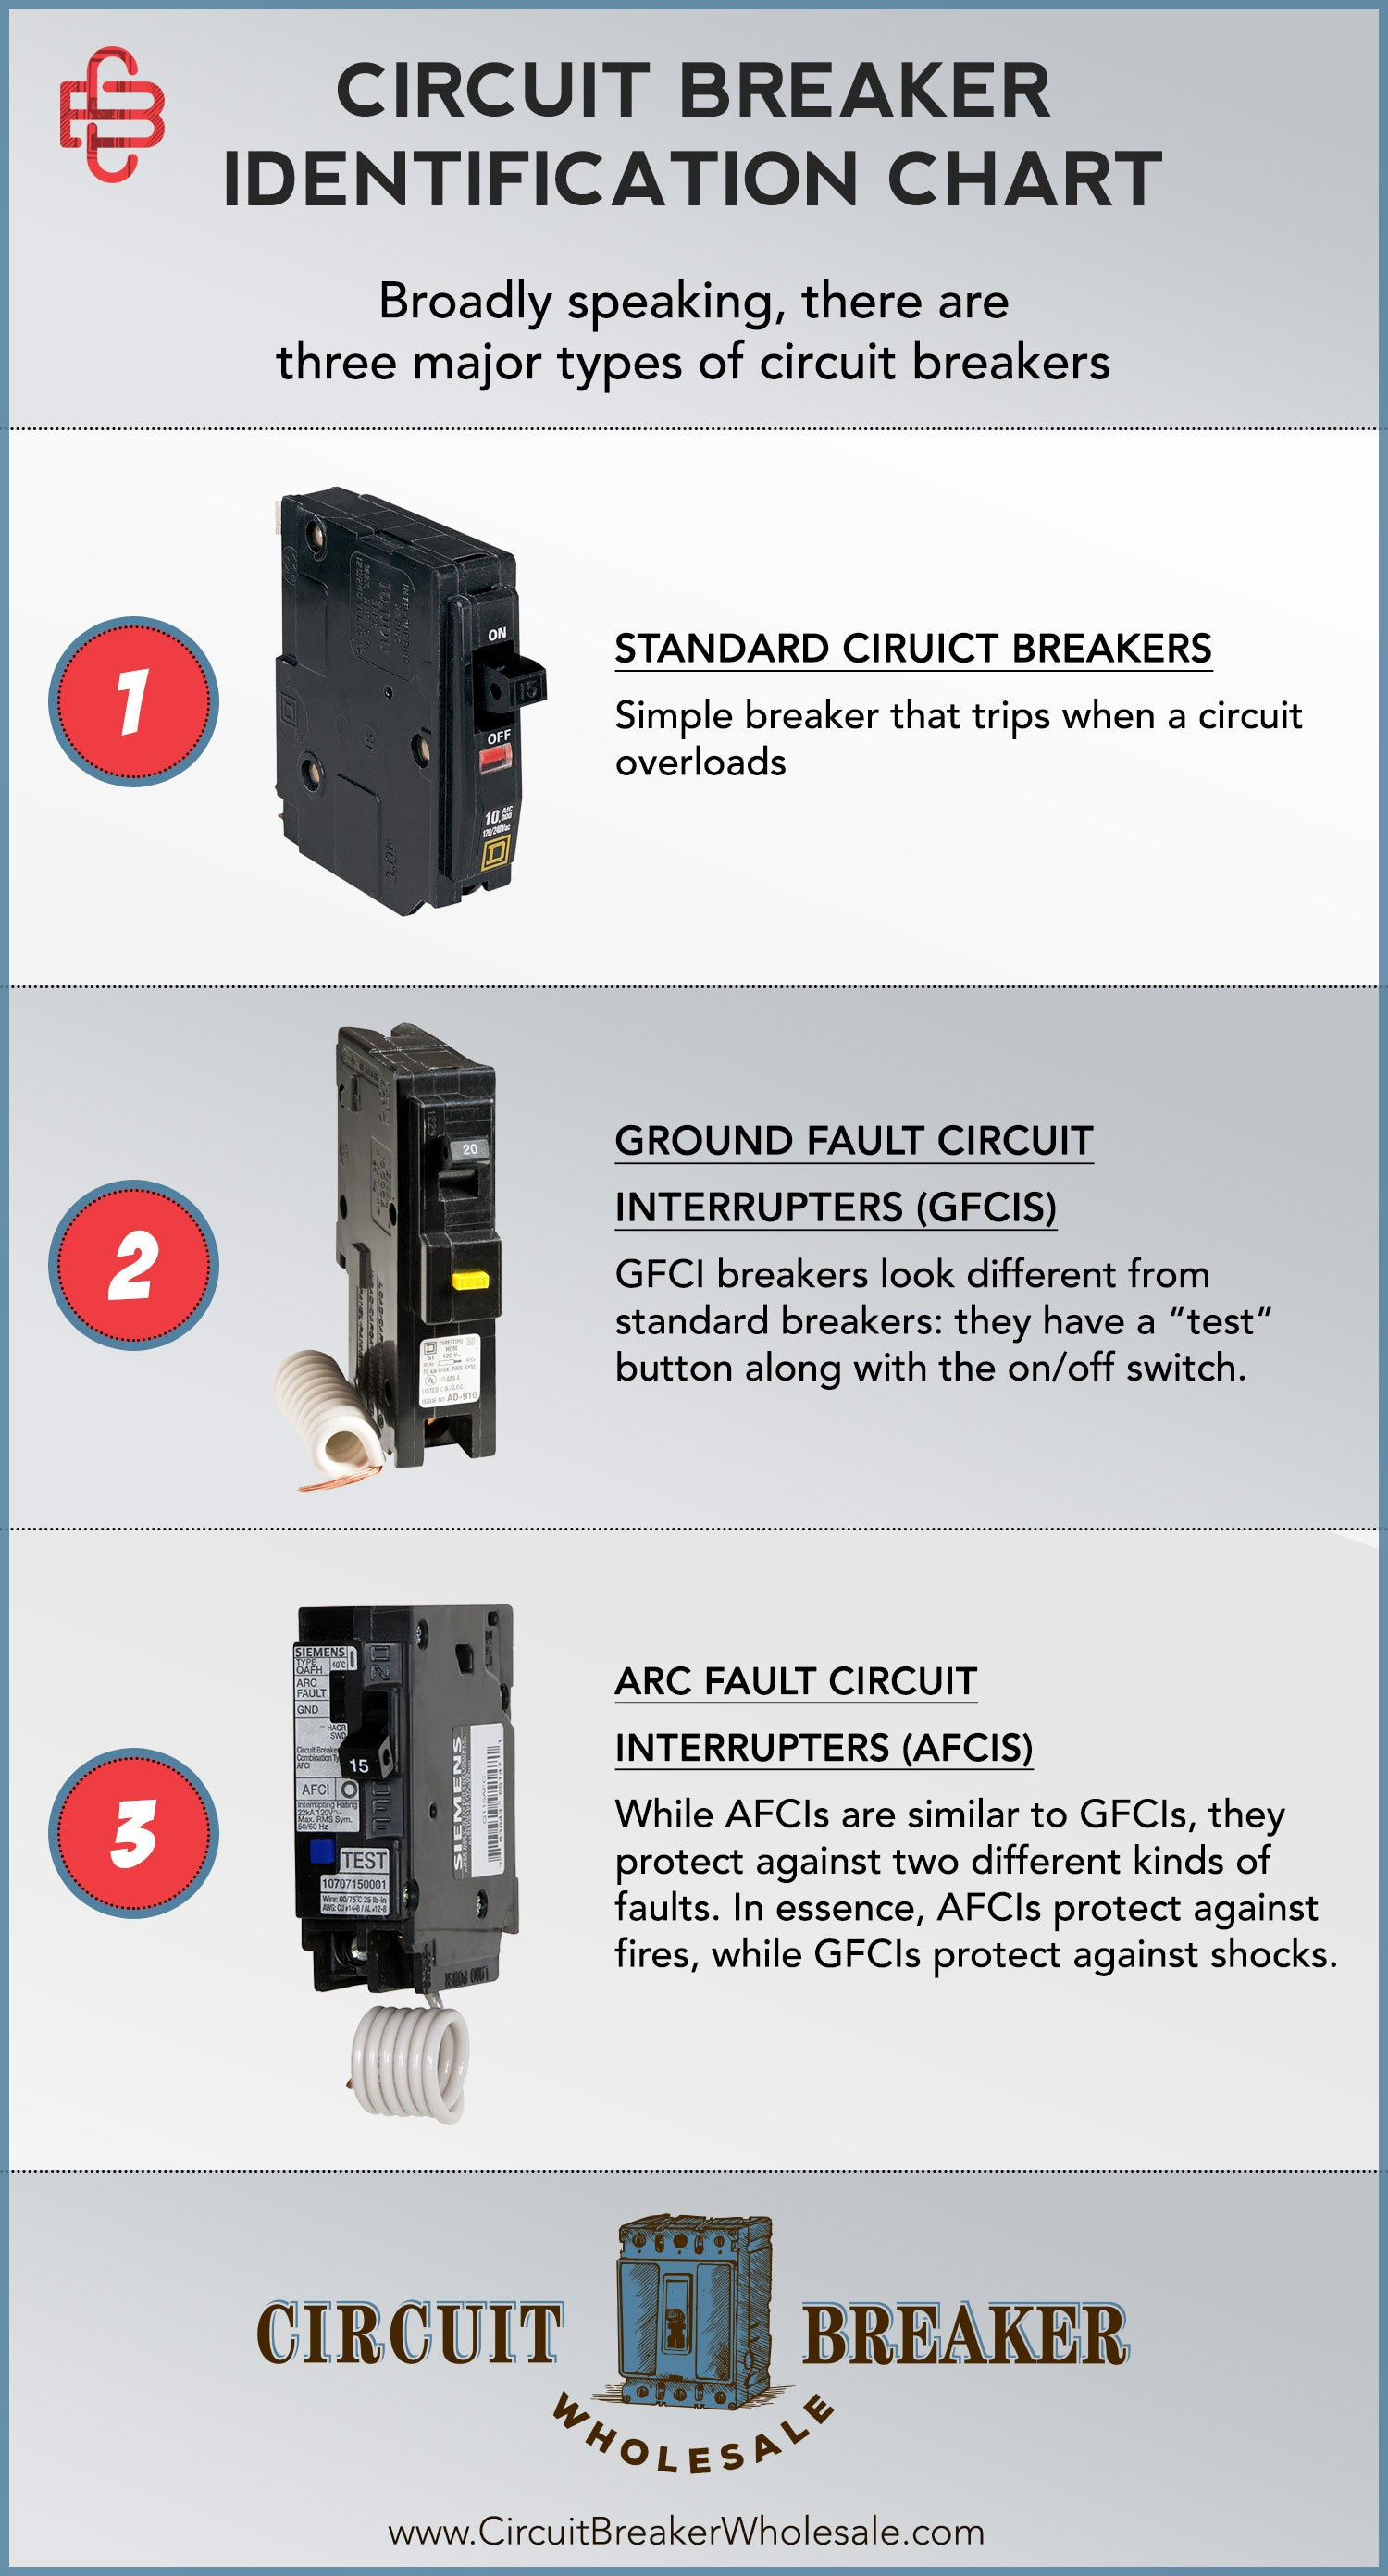 How to Identify Circuit Breaker Types | Circuit Breaker Wholesale